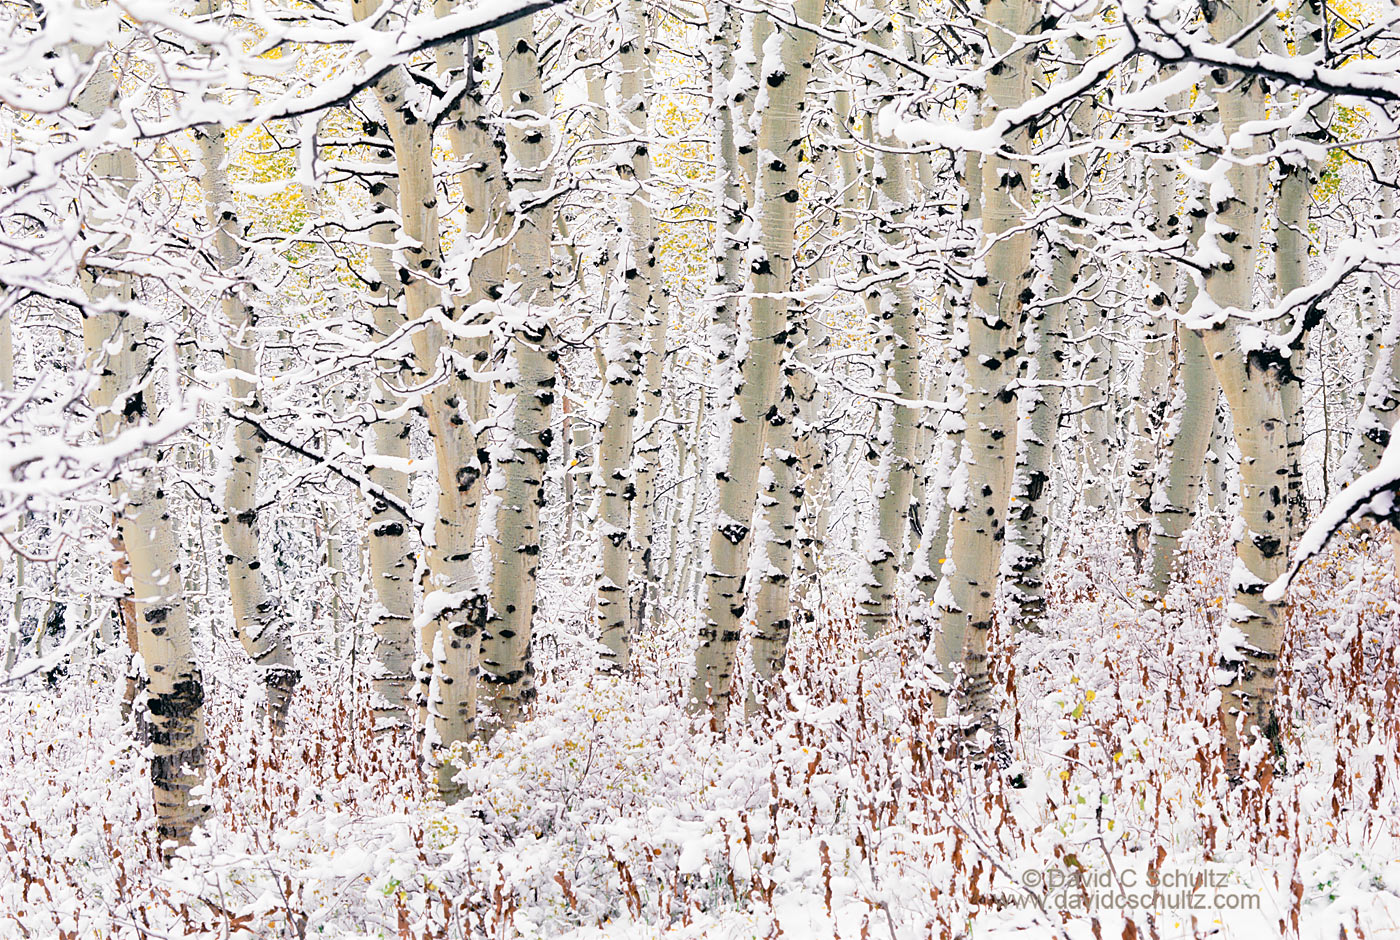 Snow covered aspen trees, Utah - Image #3-812